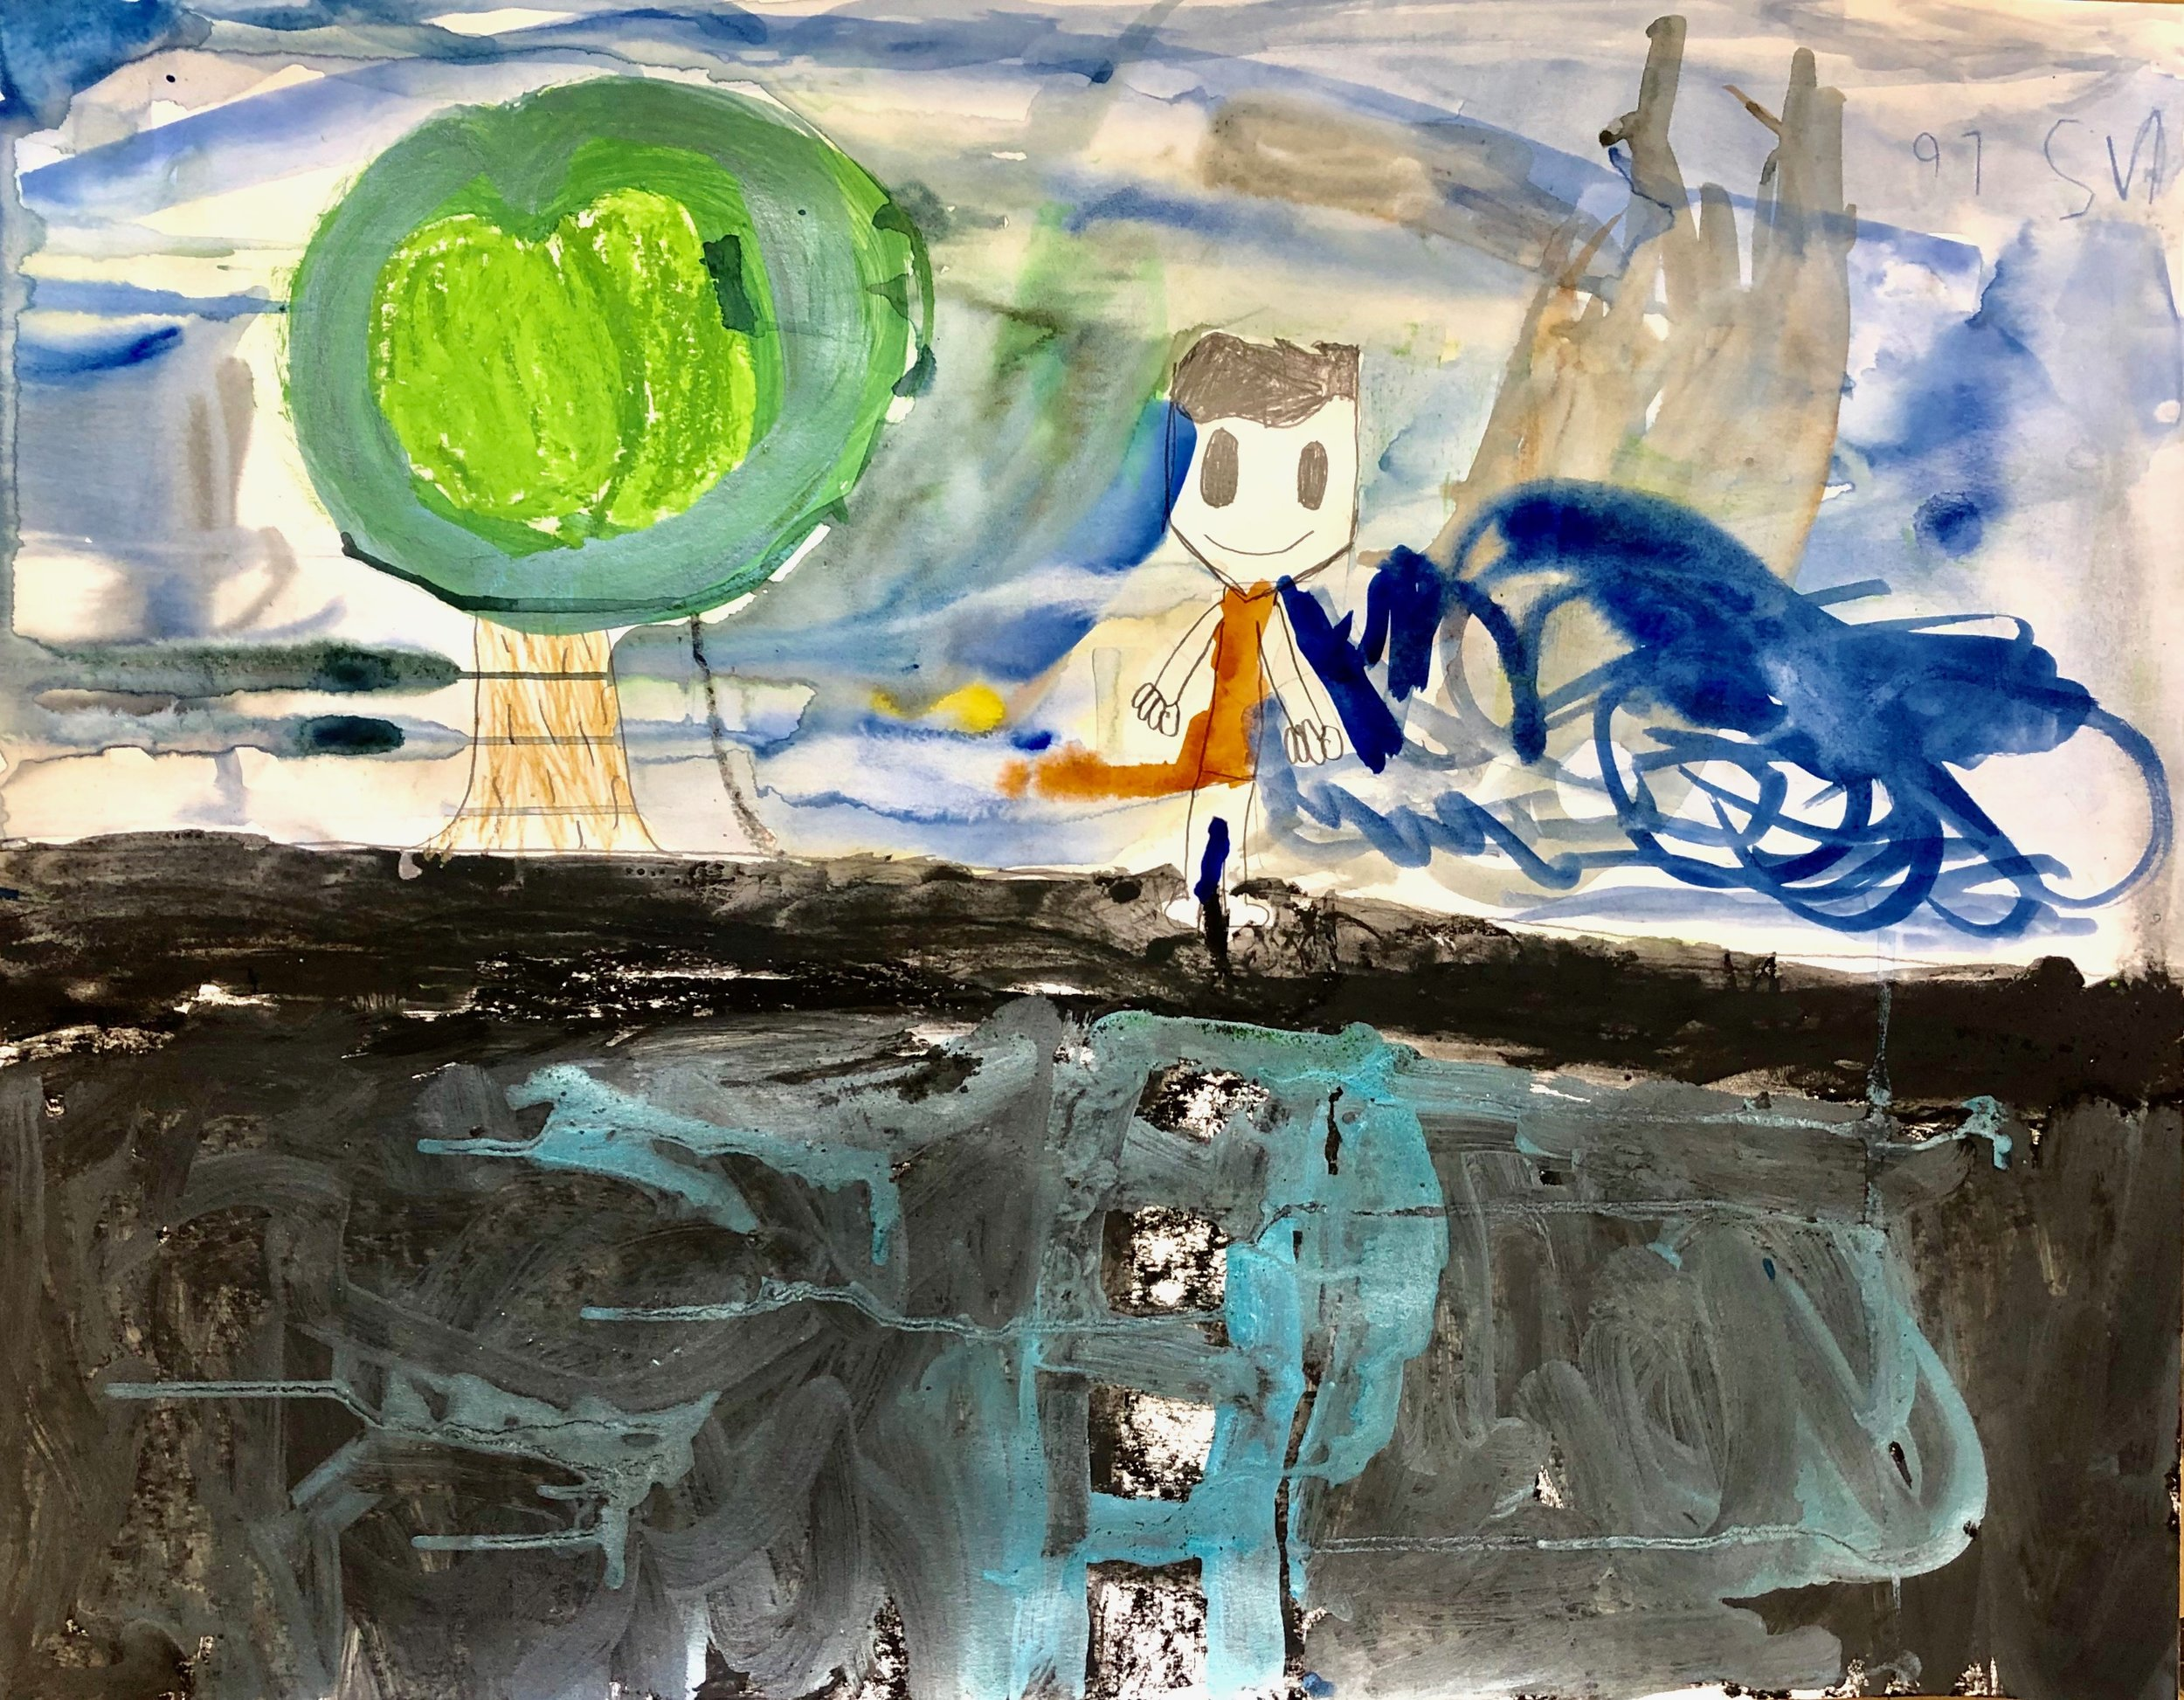 Nathanial, 6 years old. Watercolor, acrylic ink, charcoal, pastel on paper.